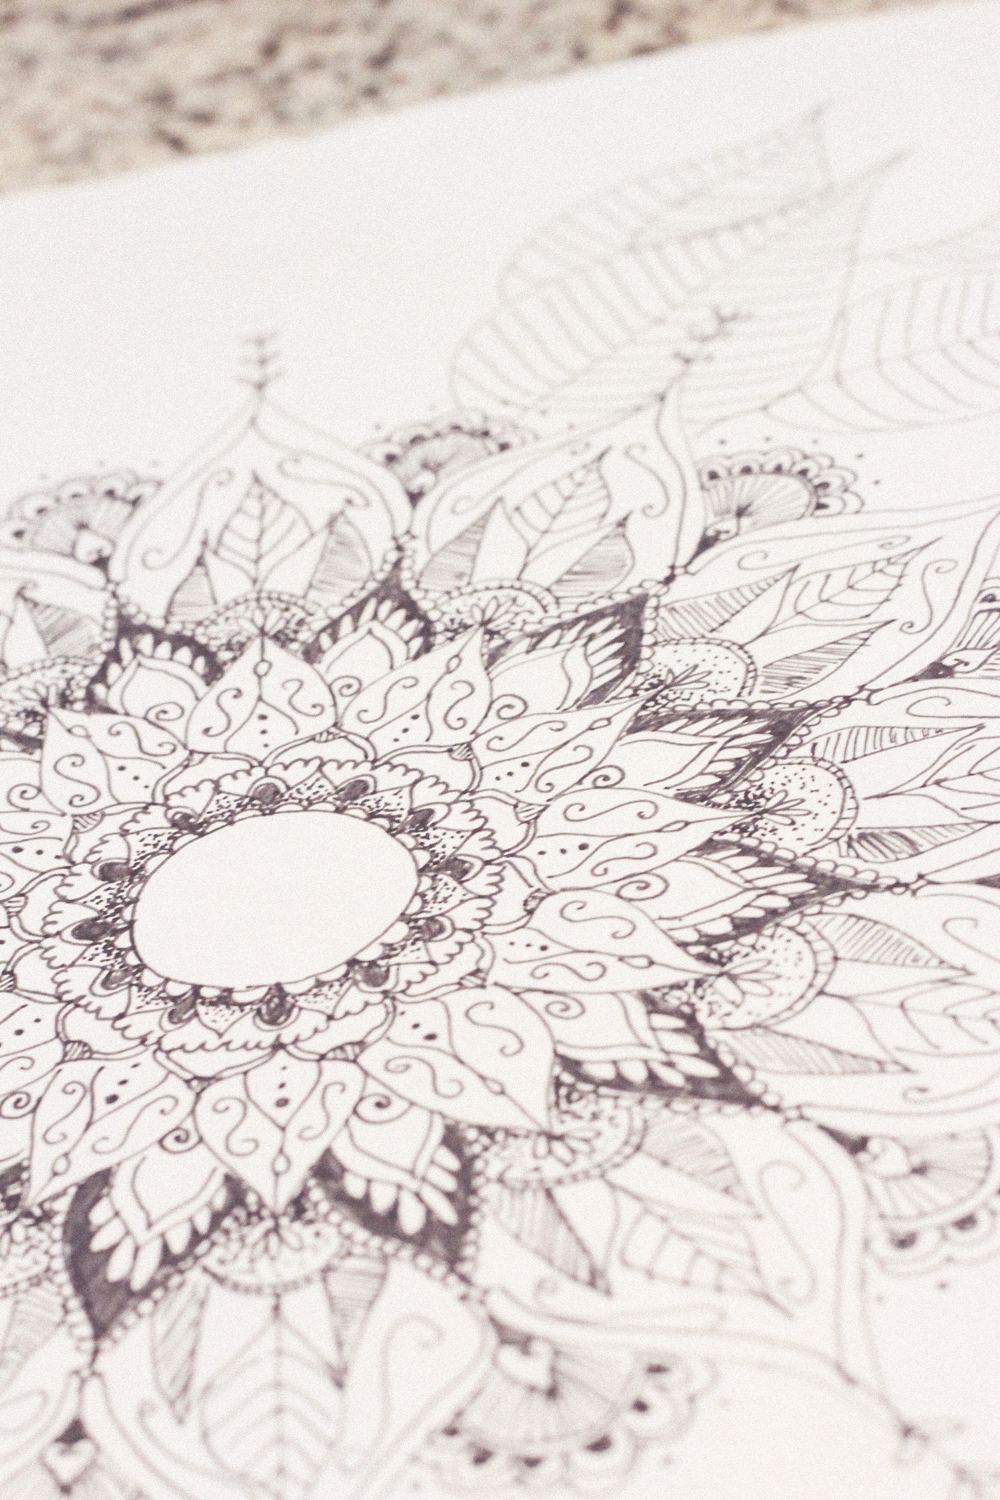 The easy way to draw a mandala | www.hannahemilylane.com